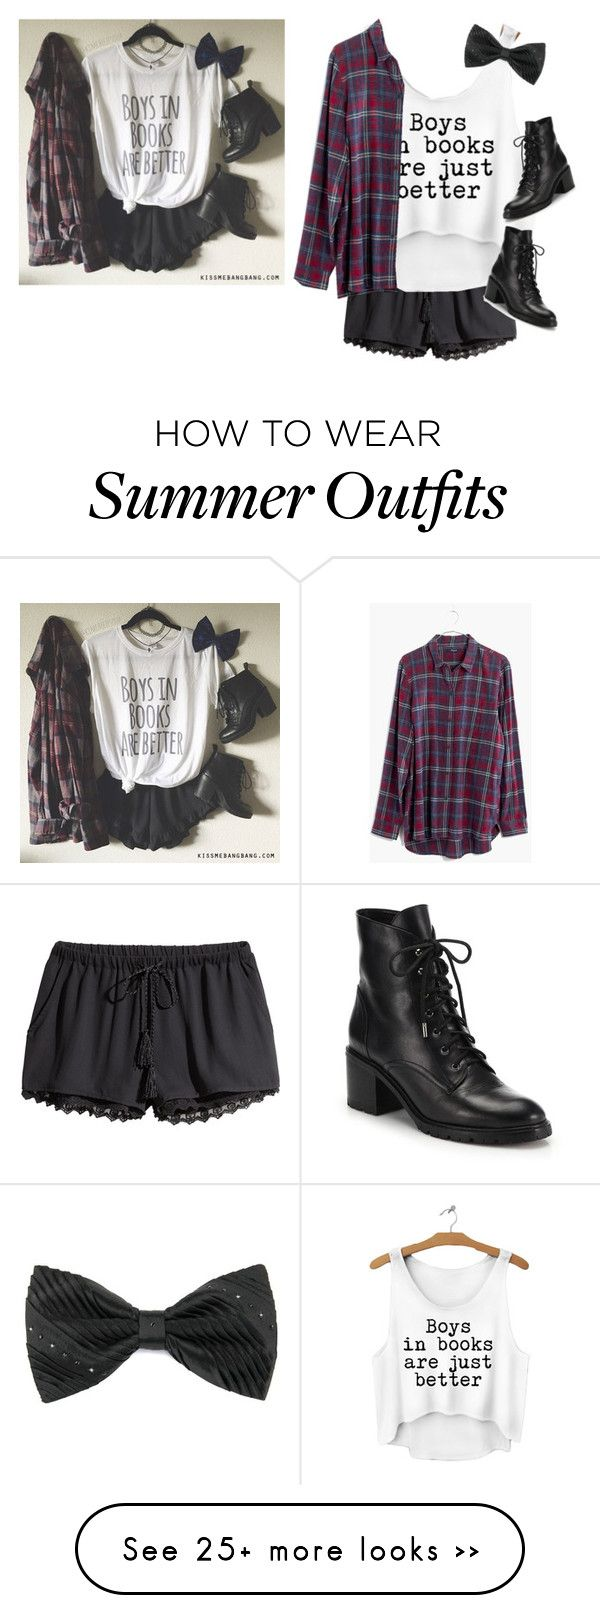 """Outfit Inspiration #1"" by neb1211 on Polyvore featuring H&M, Madewell and Joie"